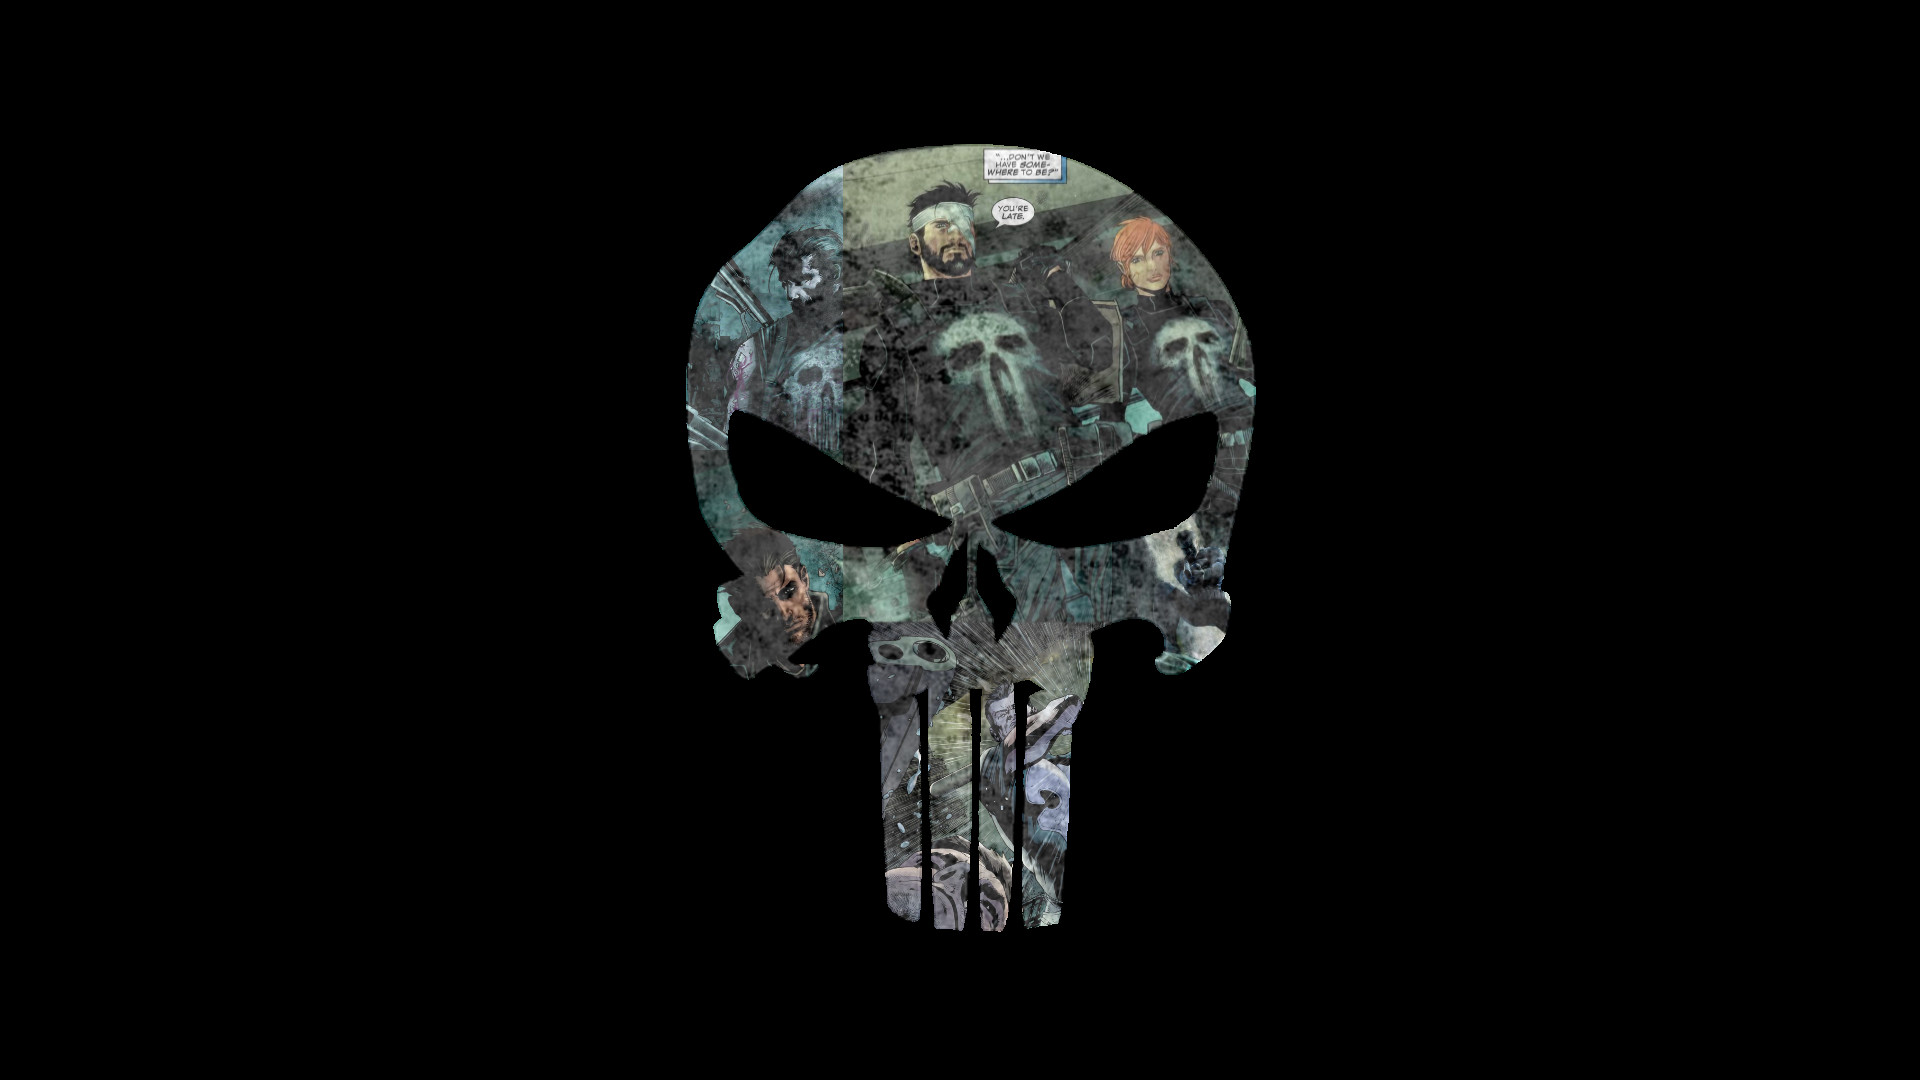 Download Car Wallpapers For Laptop Punisher Skull Wallpaper 61 Images